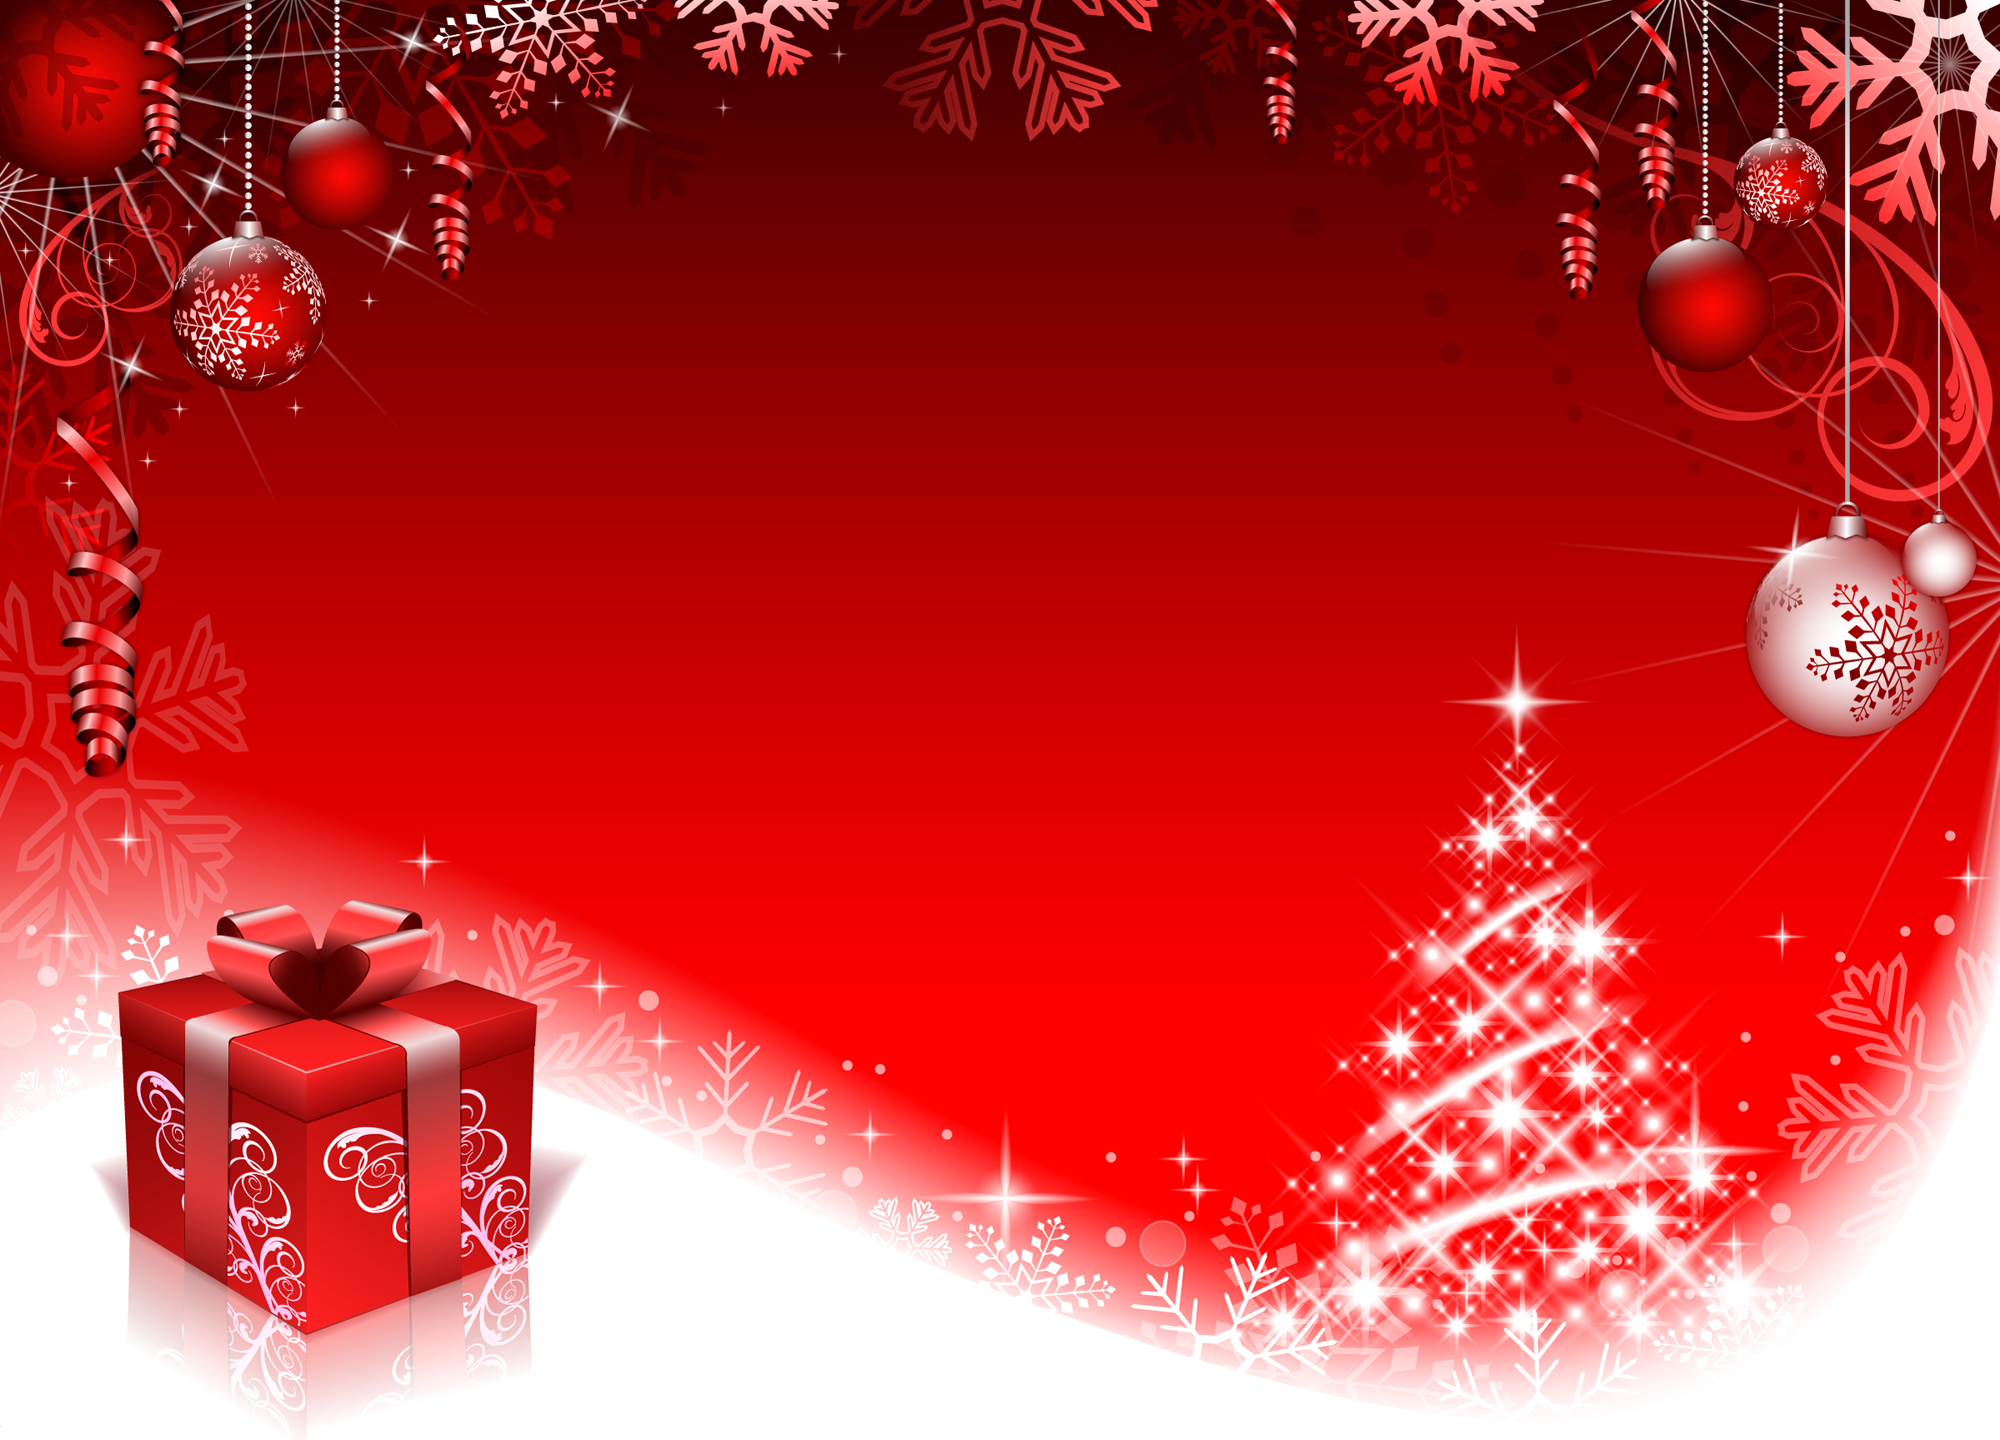 15 Christmas Card Backgrounds Photoshop Images